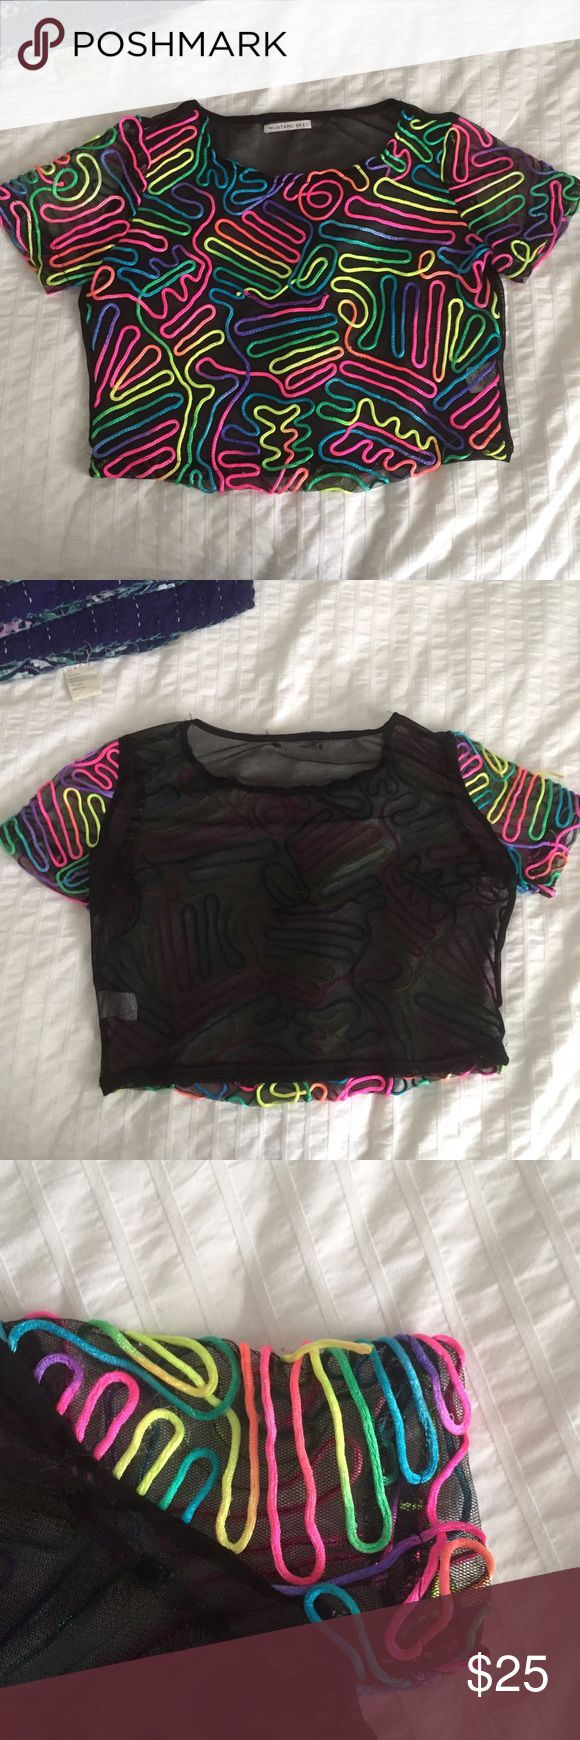 Nasty gal festival crop top Nasty gal neon pattern sheer crop top. I never wore this! It's so unique and would be the perfect piece for a festival or just to spice up your outfit. Size small. Nasty Gal Tops Crop Tops